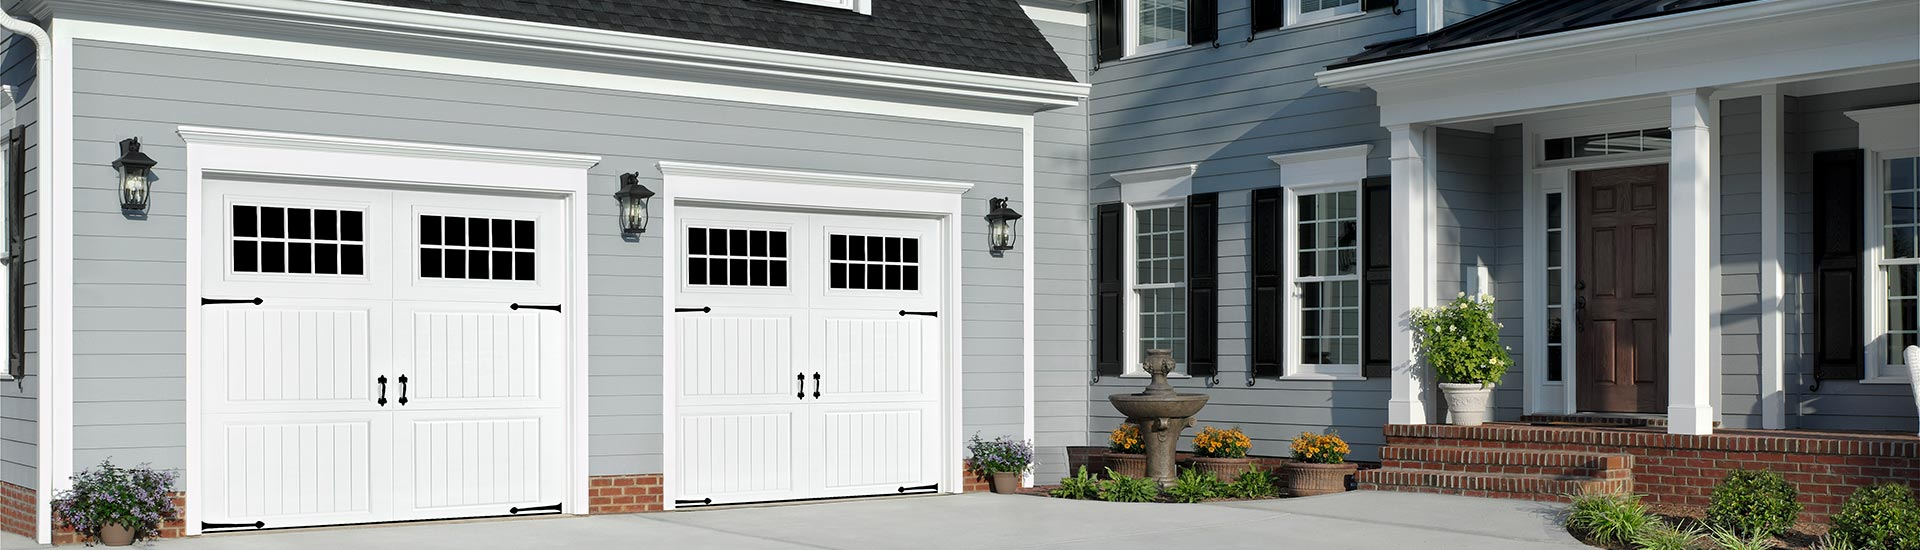 we and that door garage some installed thornton here opener repair are broomfield summer doors fall portfolio have